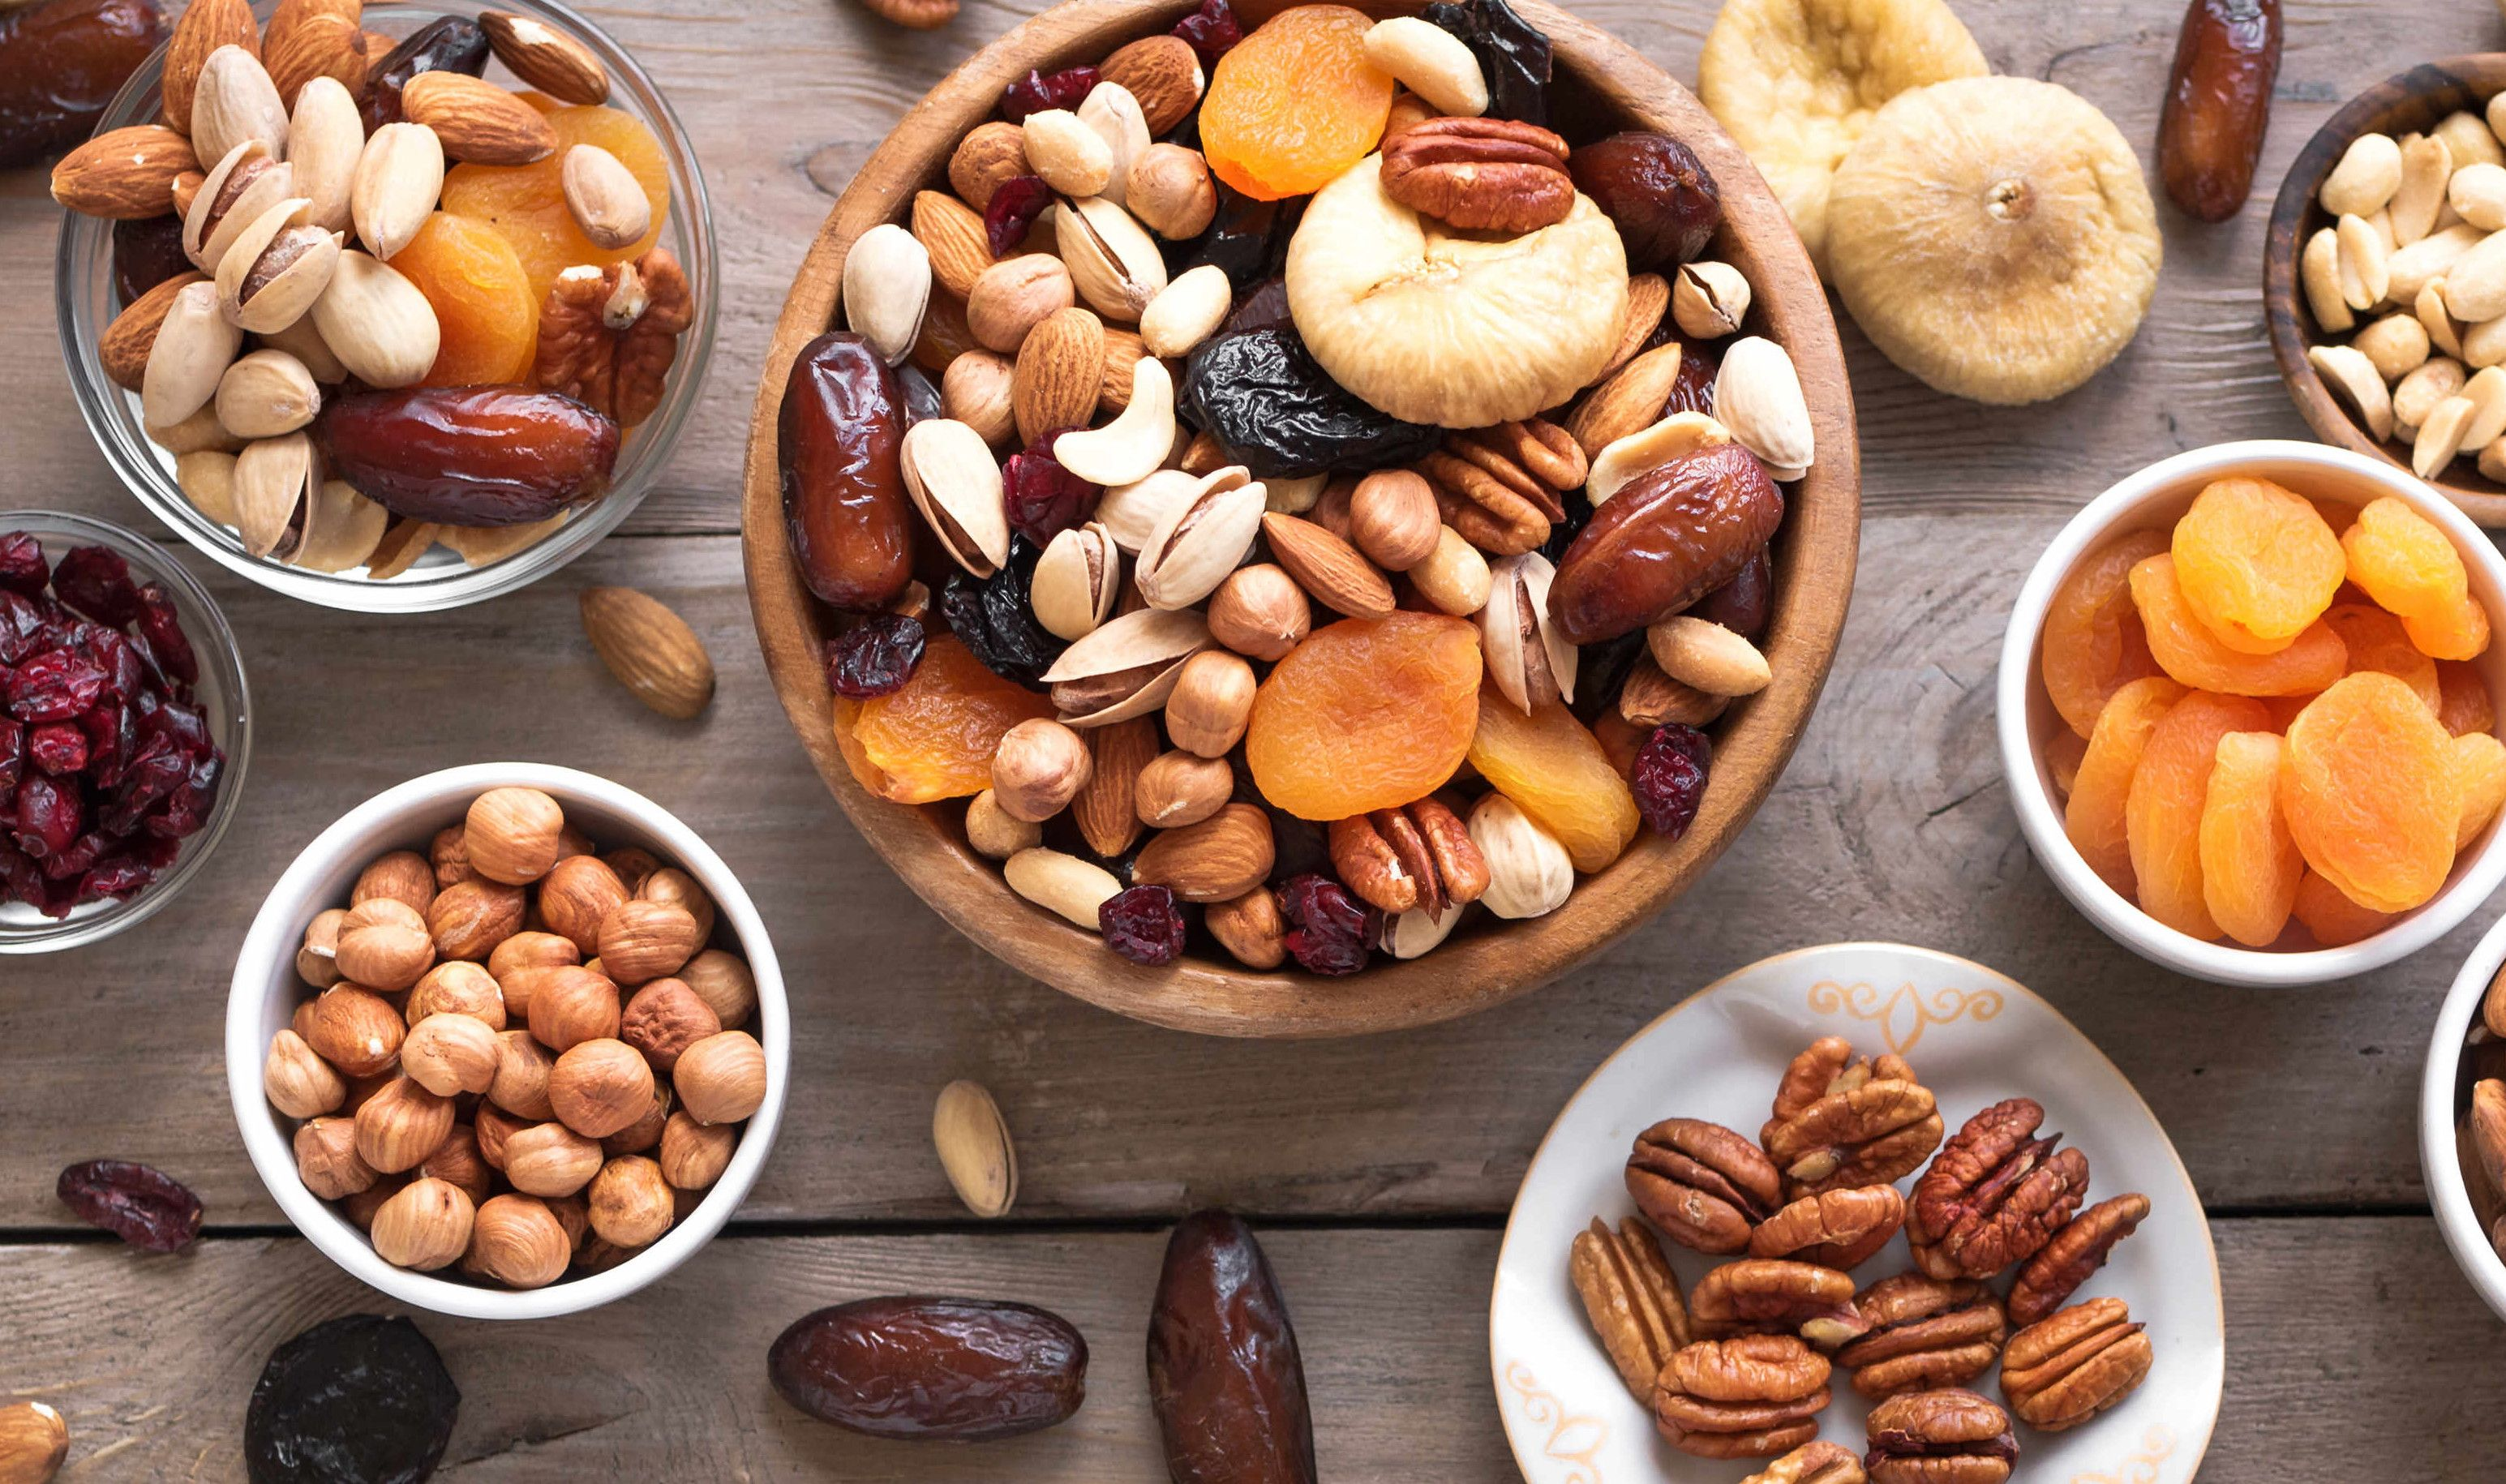 How to Store Nuts and Dried Fruits